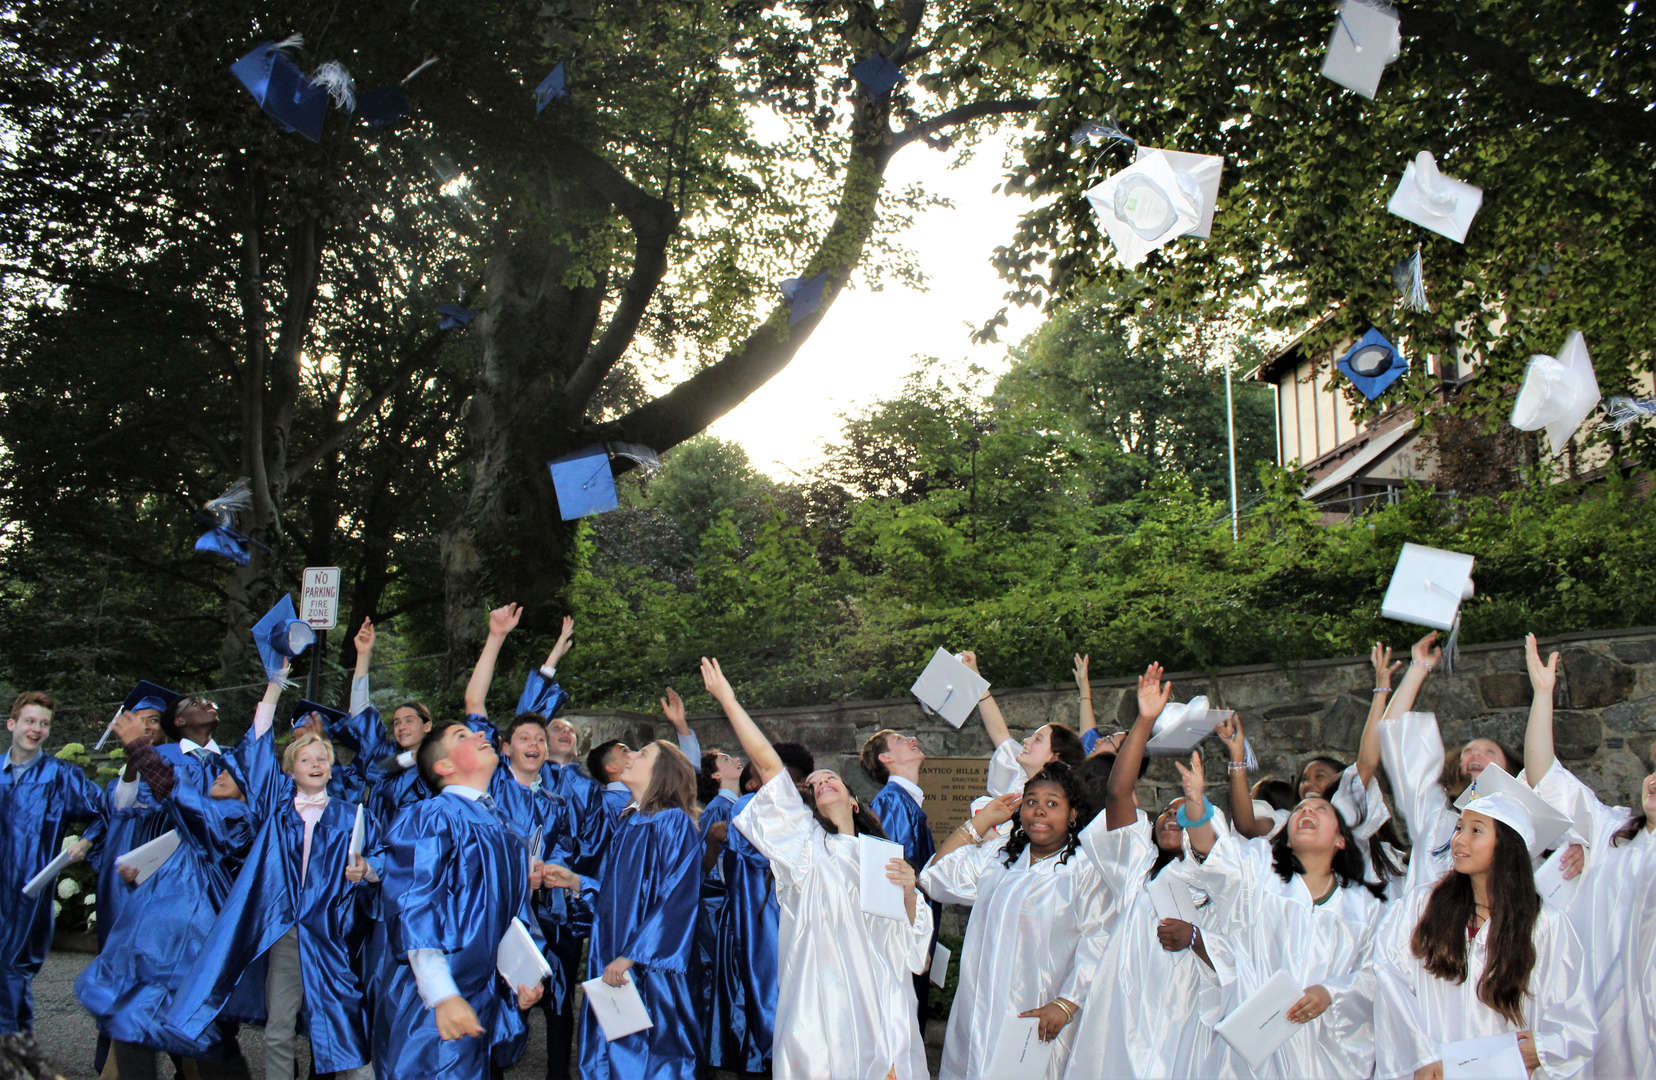 Eighth-graders throw up their caps after graduating from Pocantico Hills School.